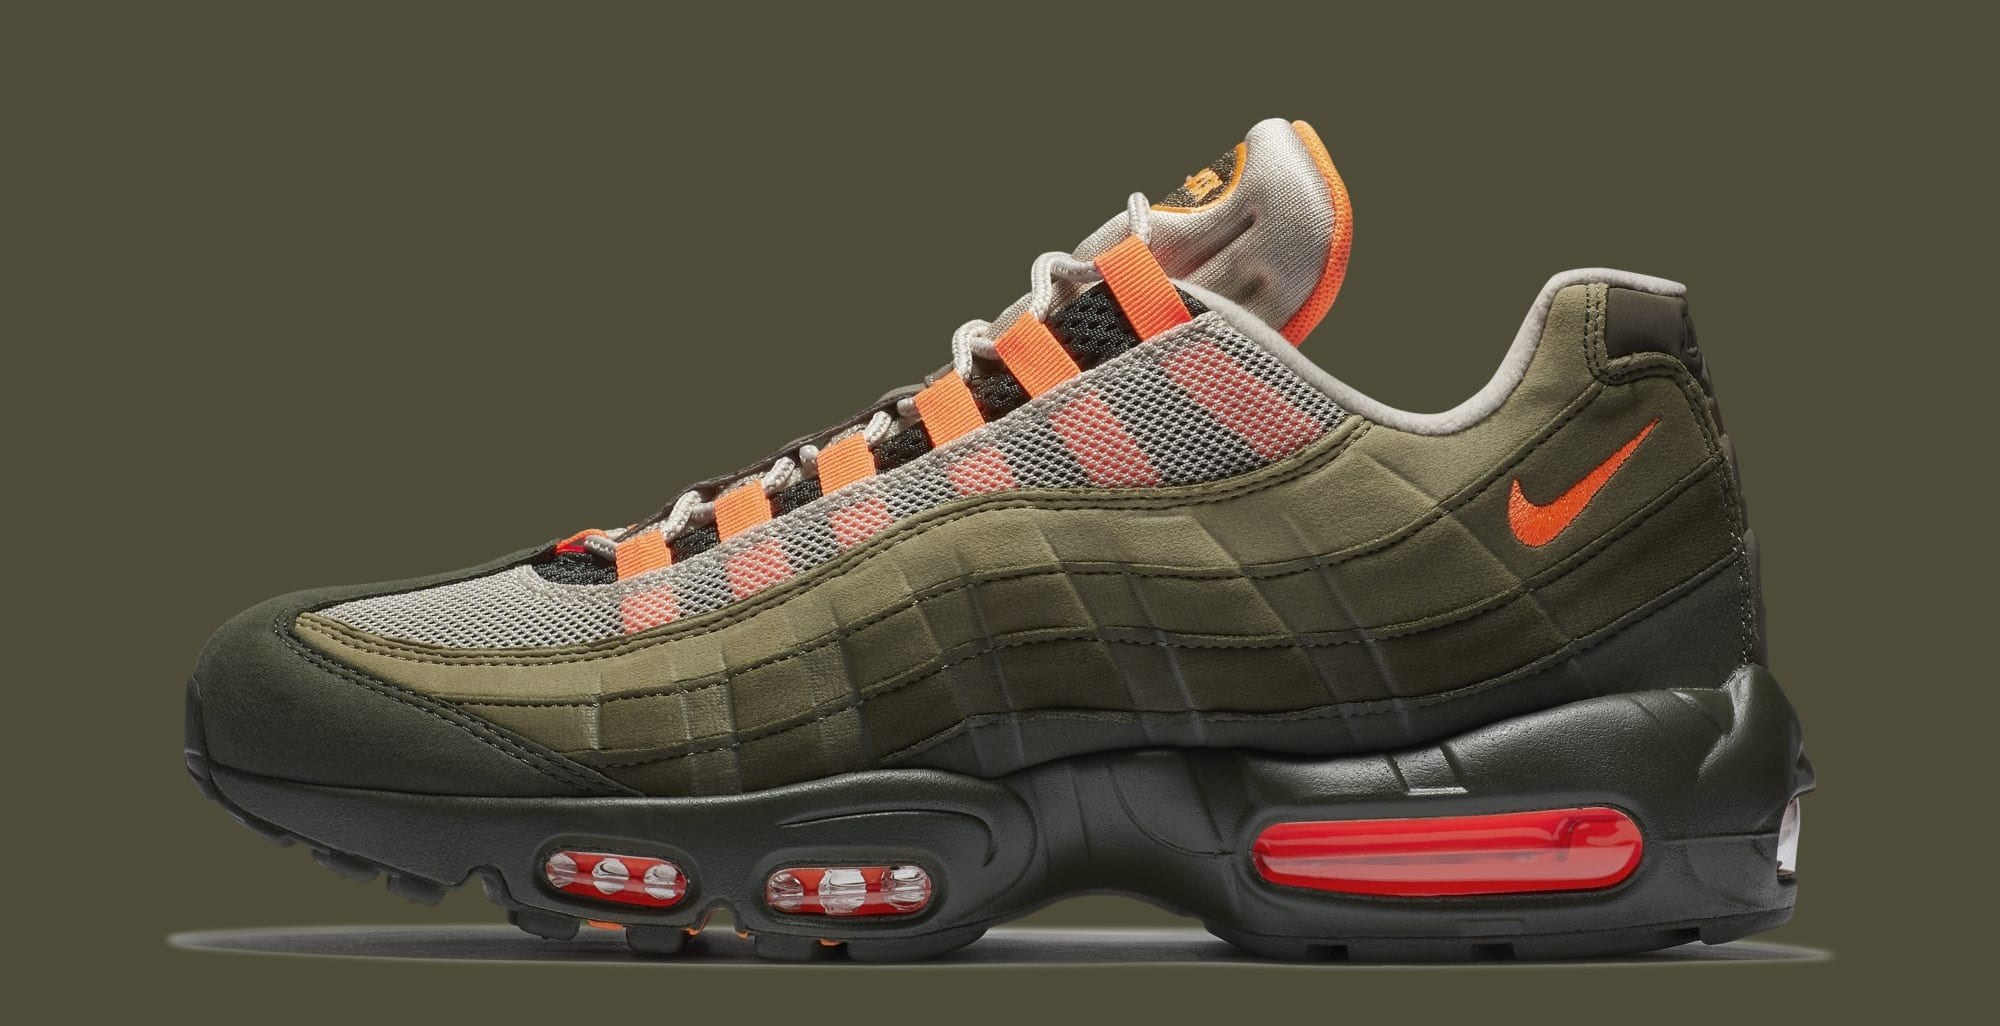 b7fe55f3d1fe ... discount code for nike air max 95 og string total orange neutral olive  at2865 22fc9 45273